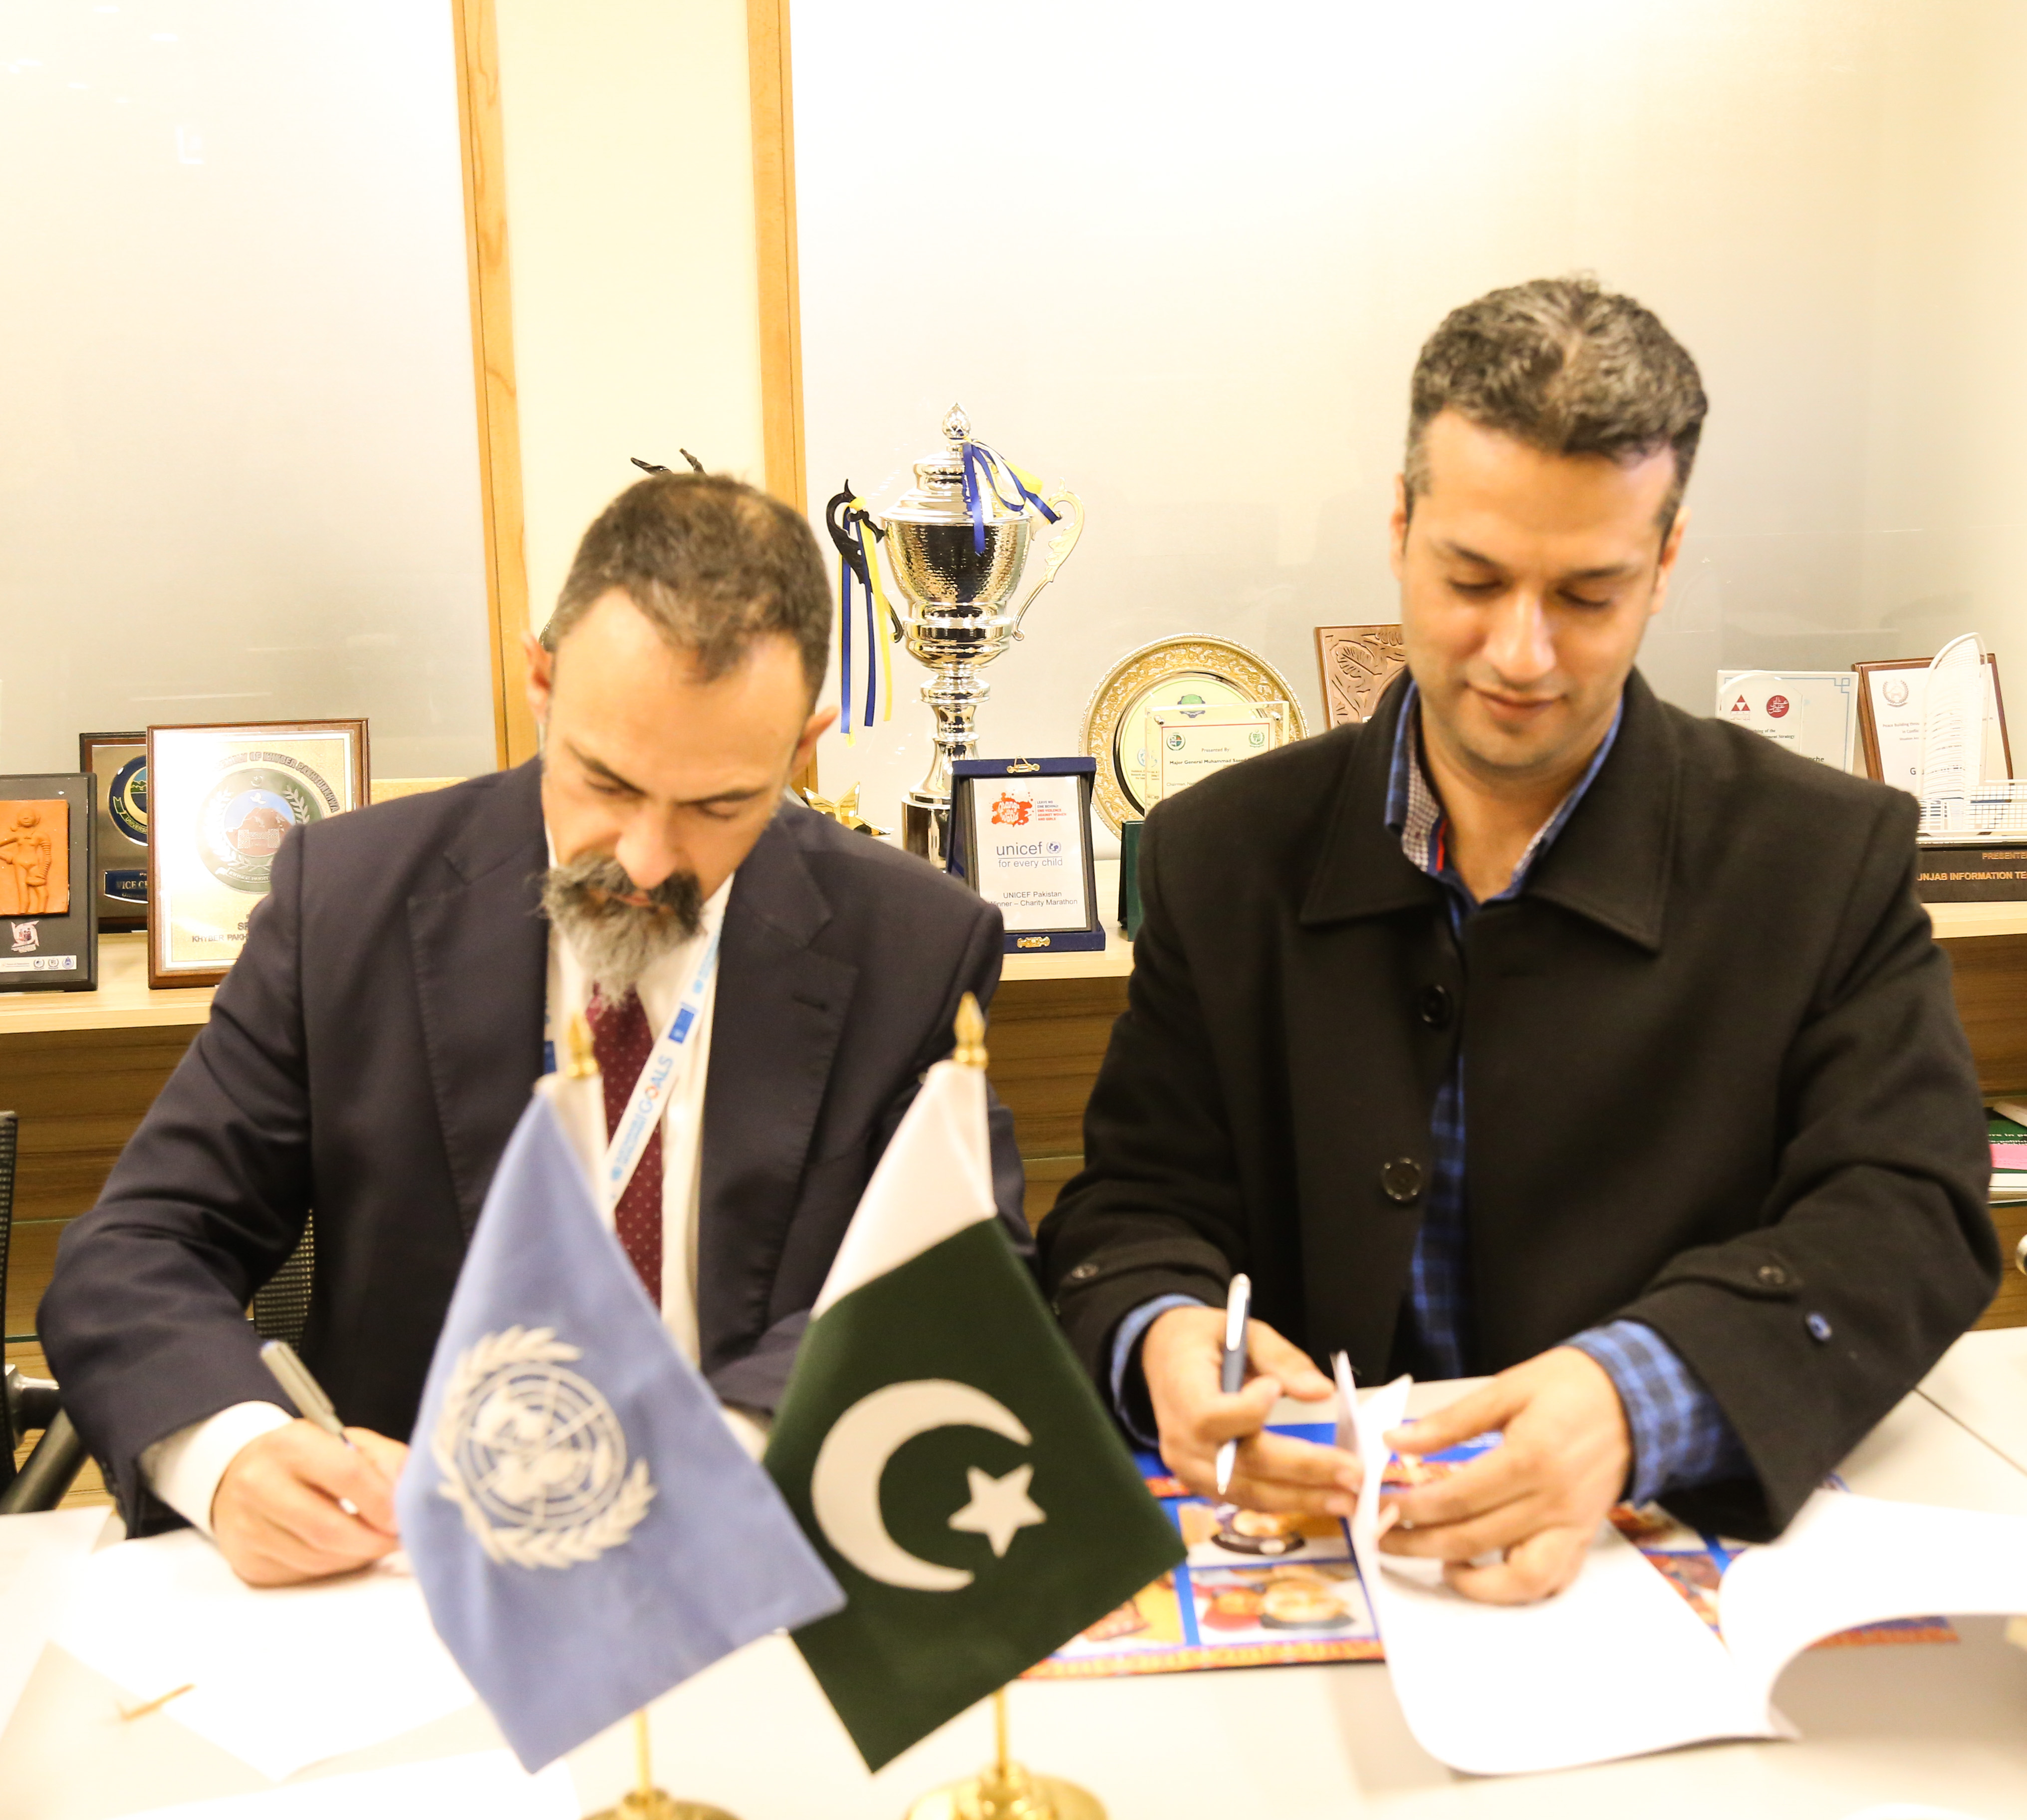 UNDP signed partnership MOU with PJN on SDG 16